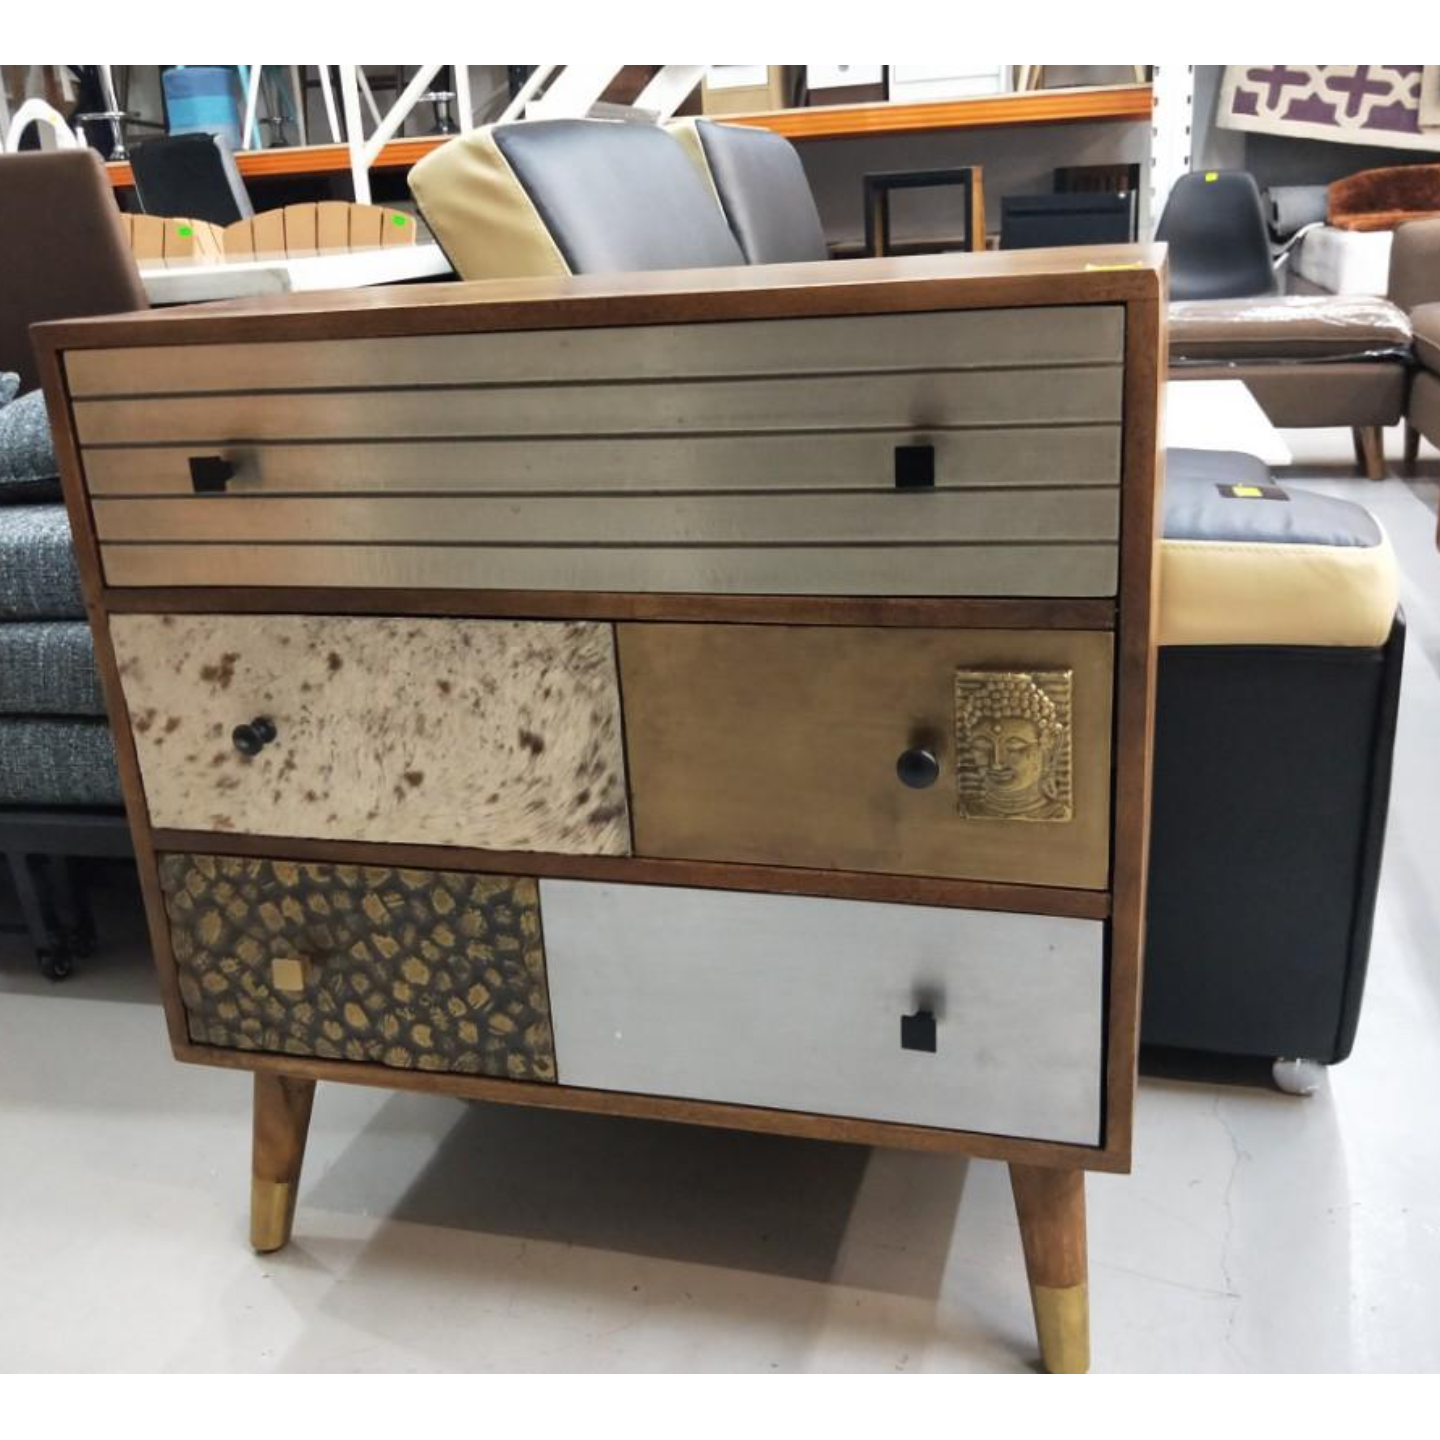 KEATON INDUSTRI Series Chest of Drawers